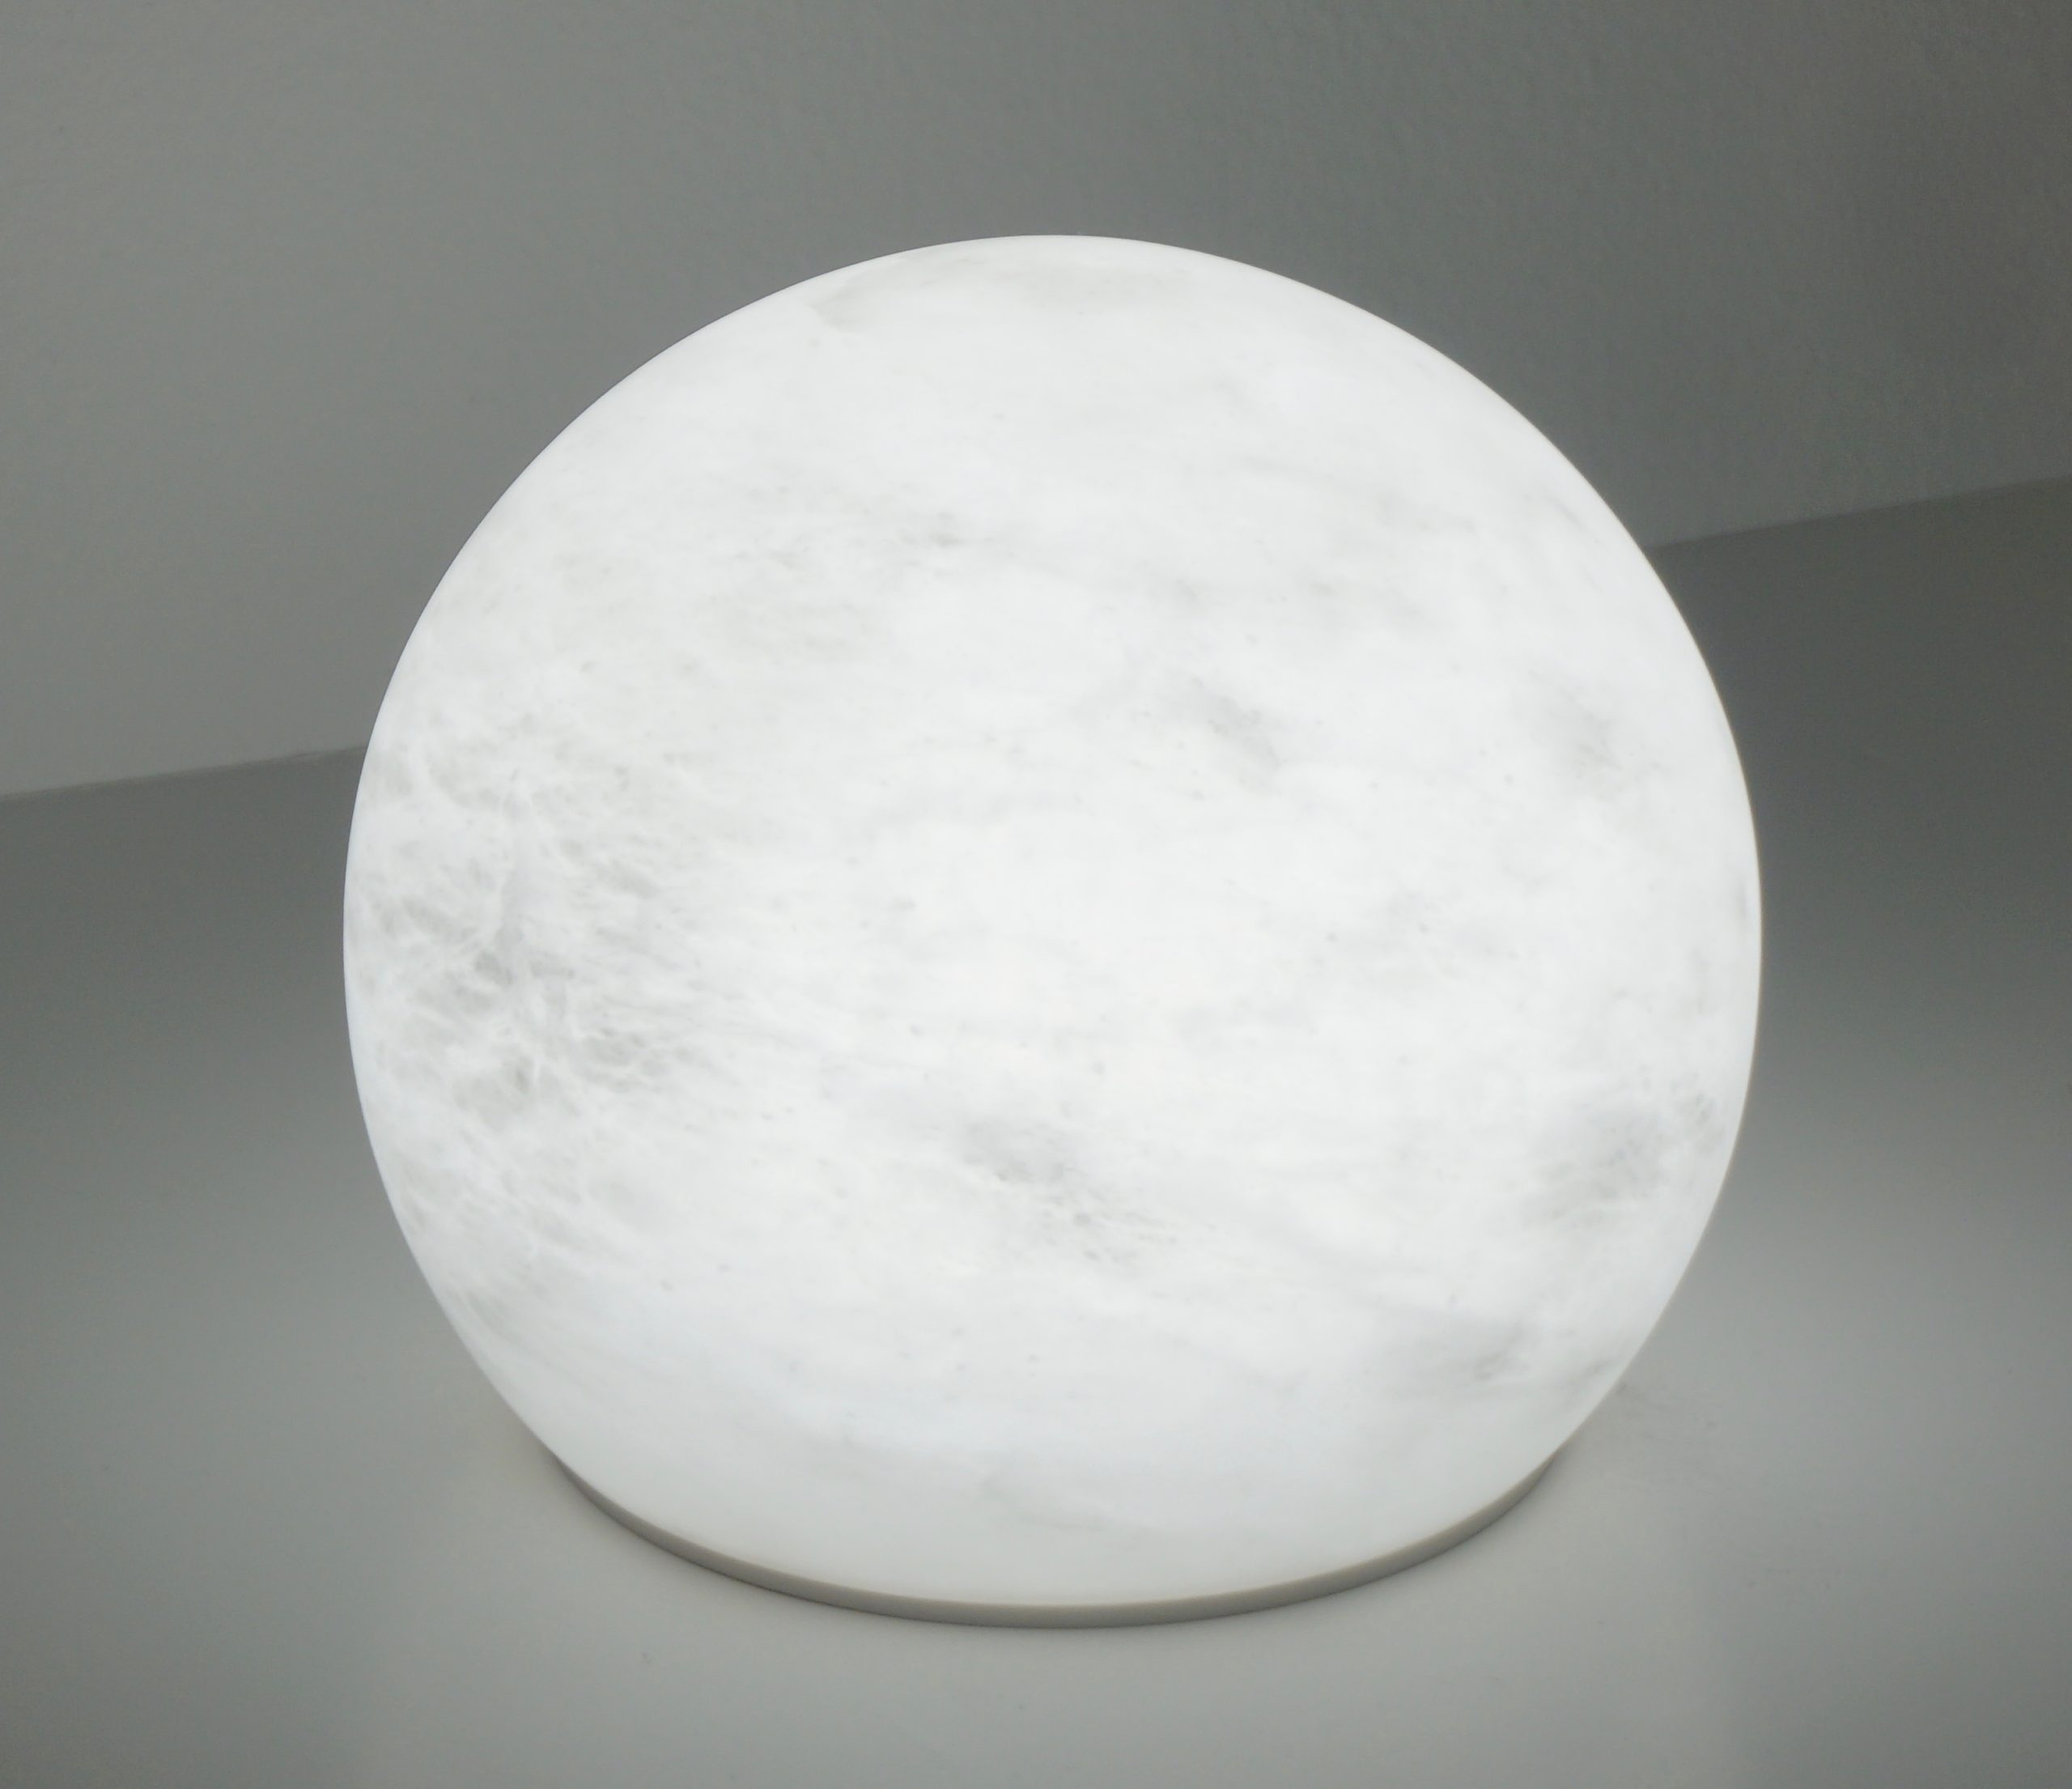 cosulich_interiors_and_antiques_products_new_york_design_Bespoke_Italian_Minimalist_White_Alabaster_Moon_Wireless_Round_Table_2-scaled-1